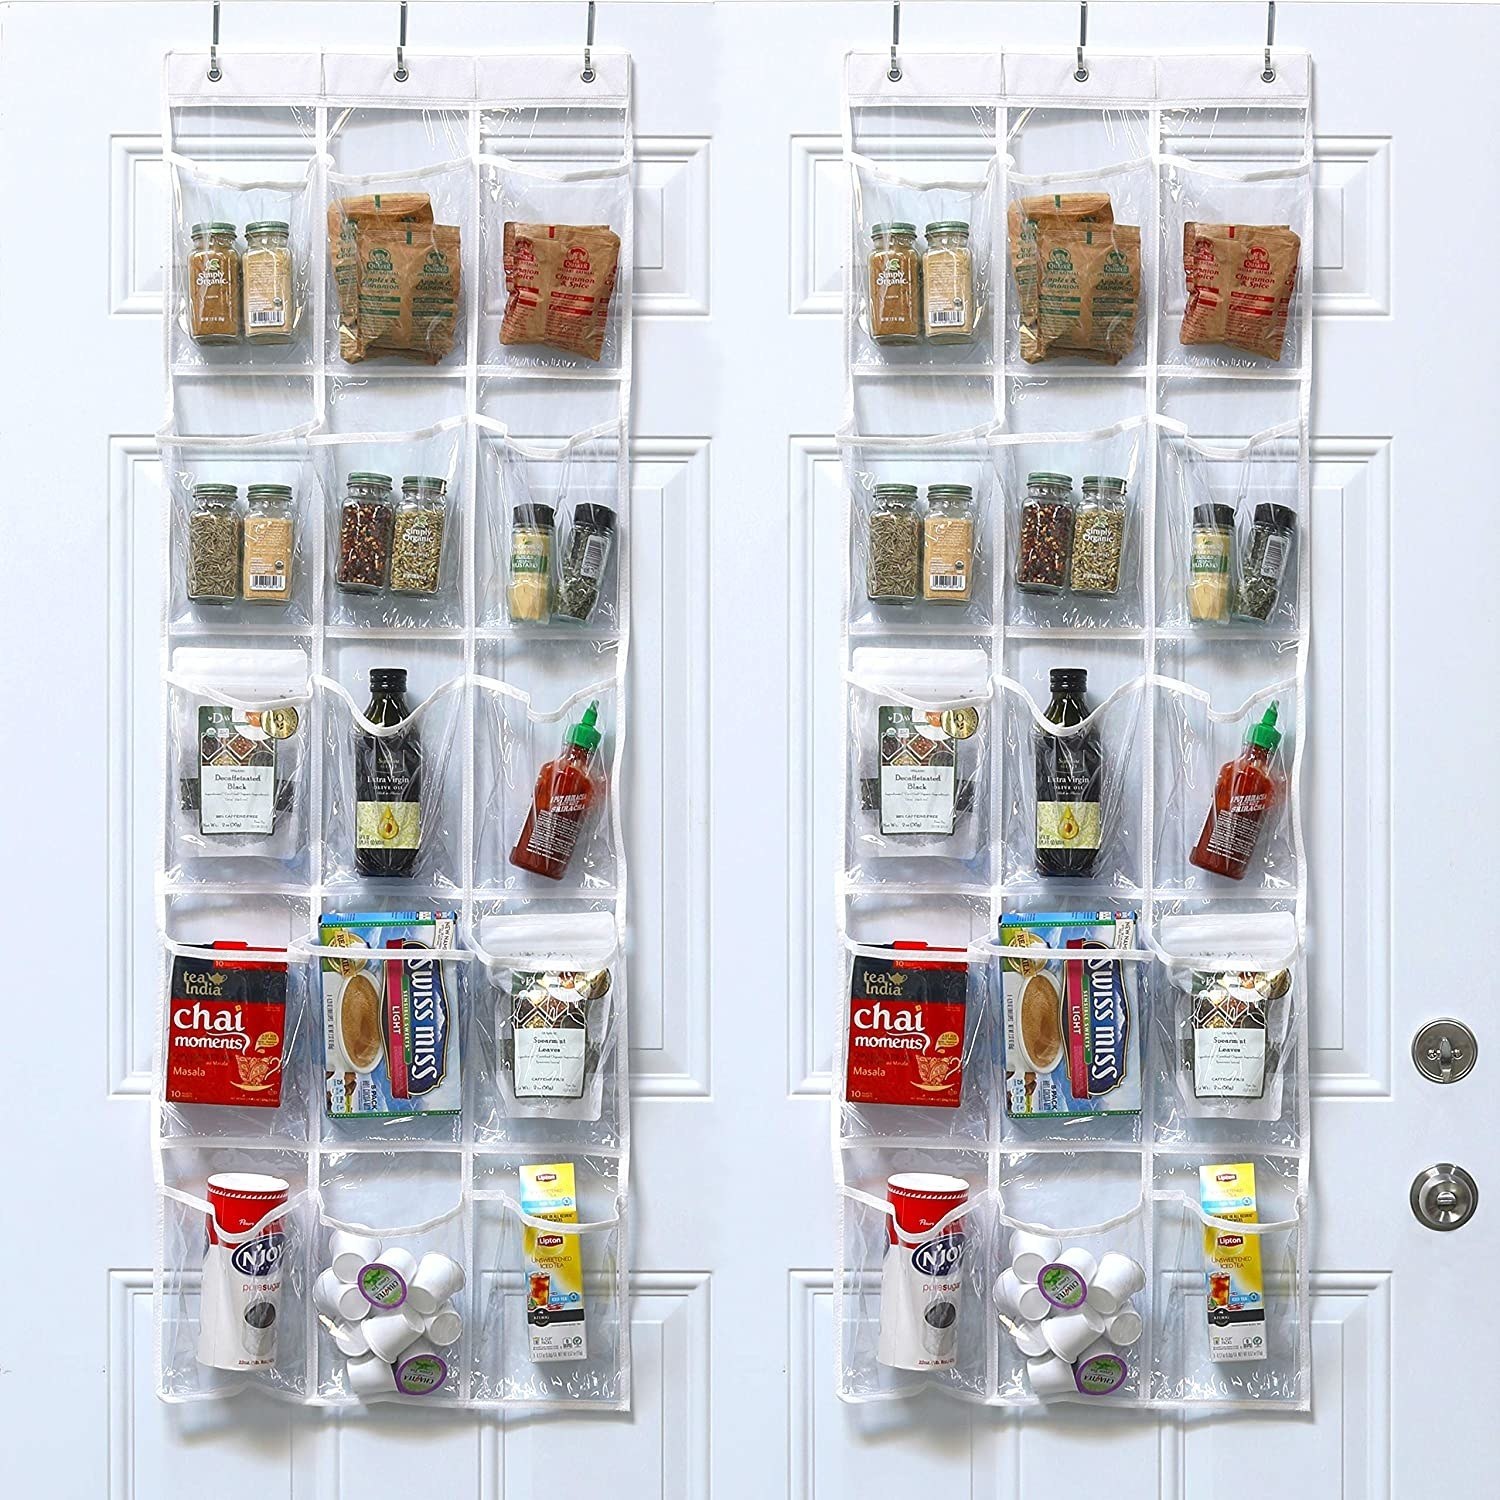 A long plastic over-the-door organizer with a dozen large pockets Each pocket is filled with bottles of spices and condiments